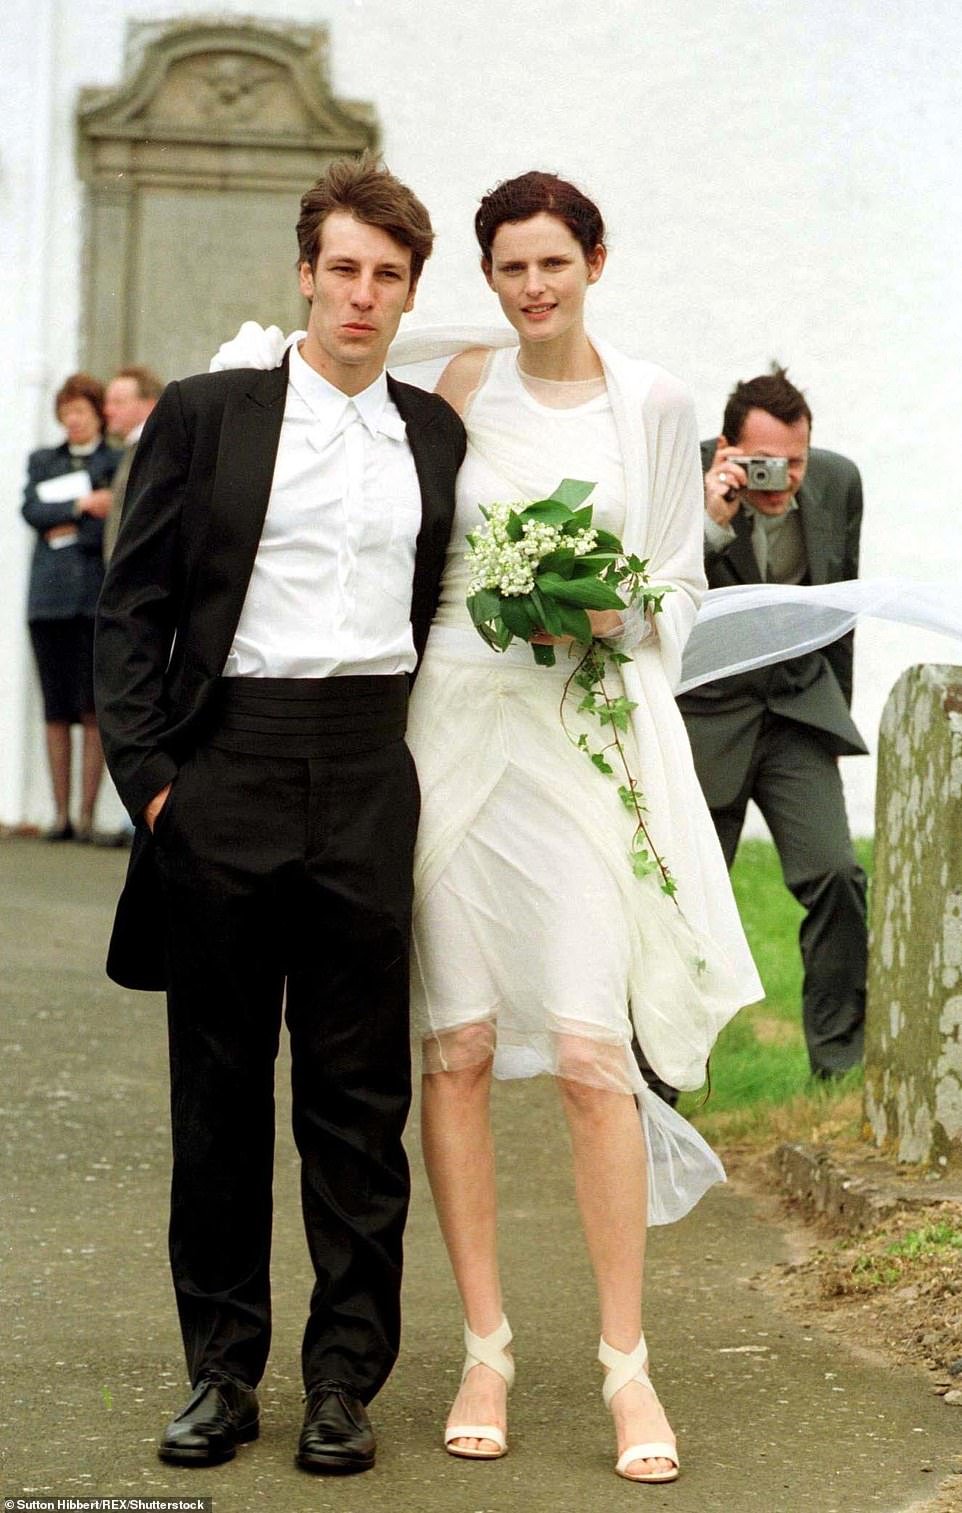 David lasnet and aristocratic supermodel Stella Tennant married in 1999 in Oxnam, a town on the Scottish borders. The pair split in August